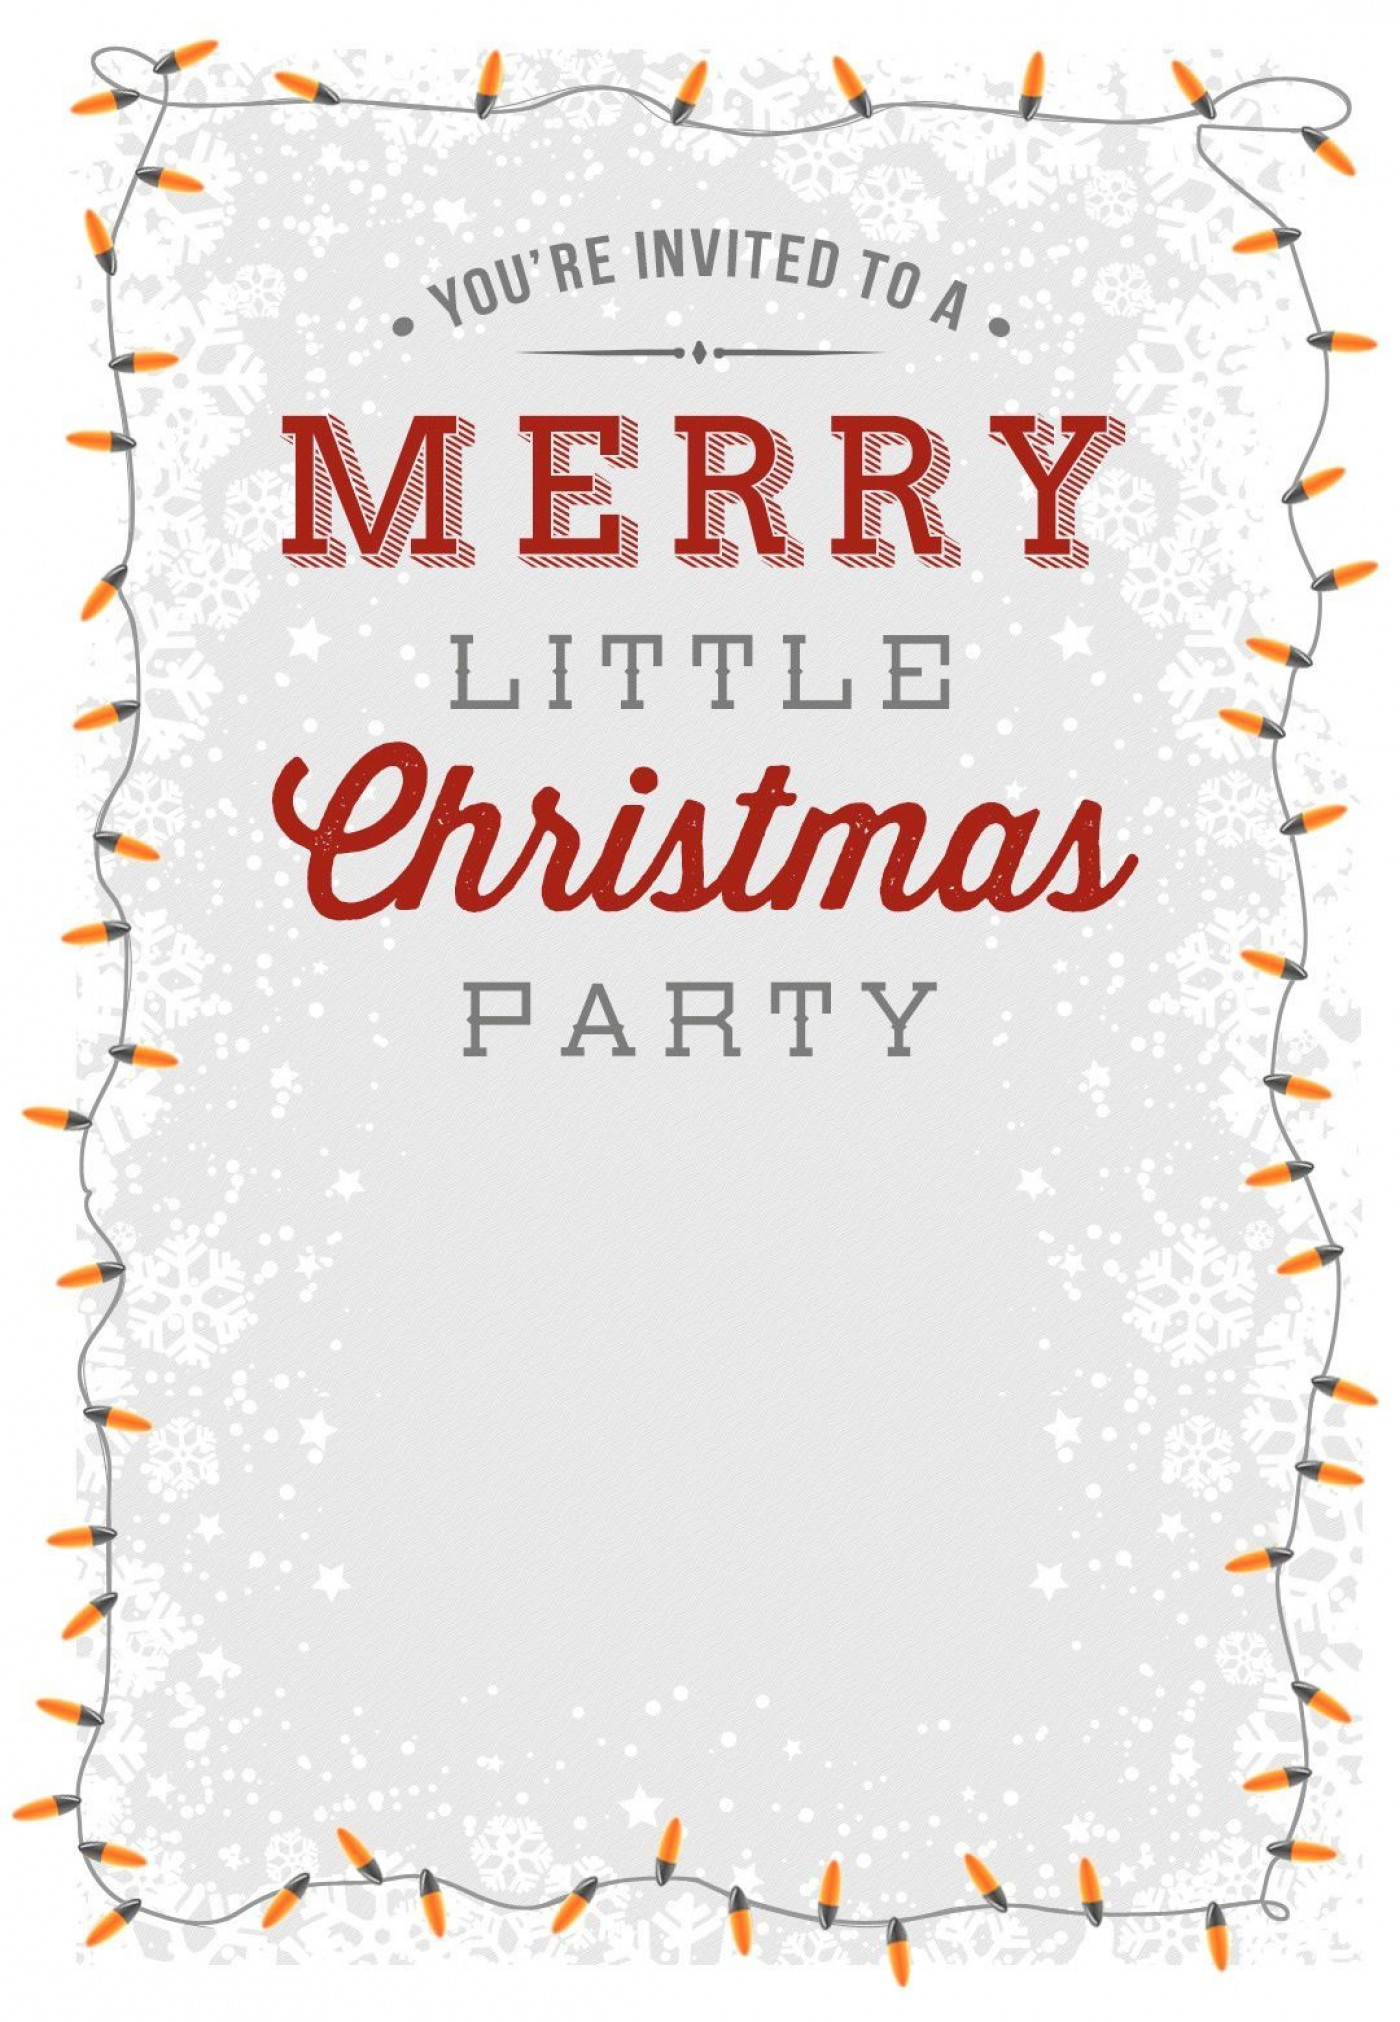 006 Fascinating Christma Party Invitation Template Idea  Funny Free Download Word Card1400